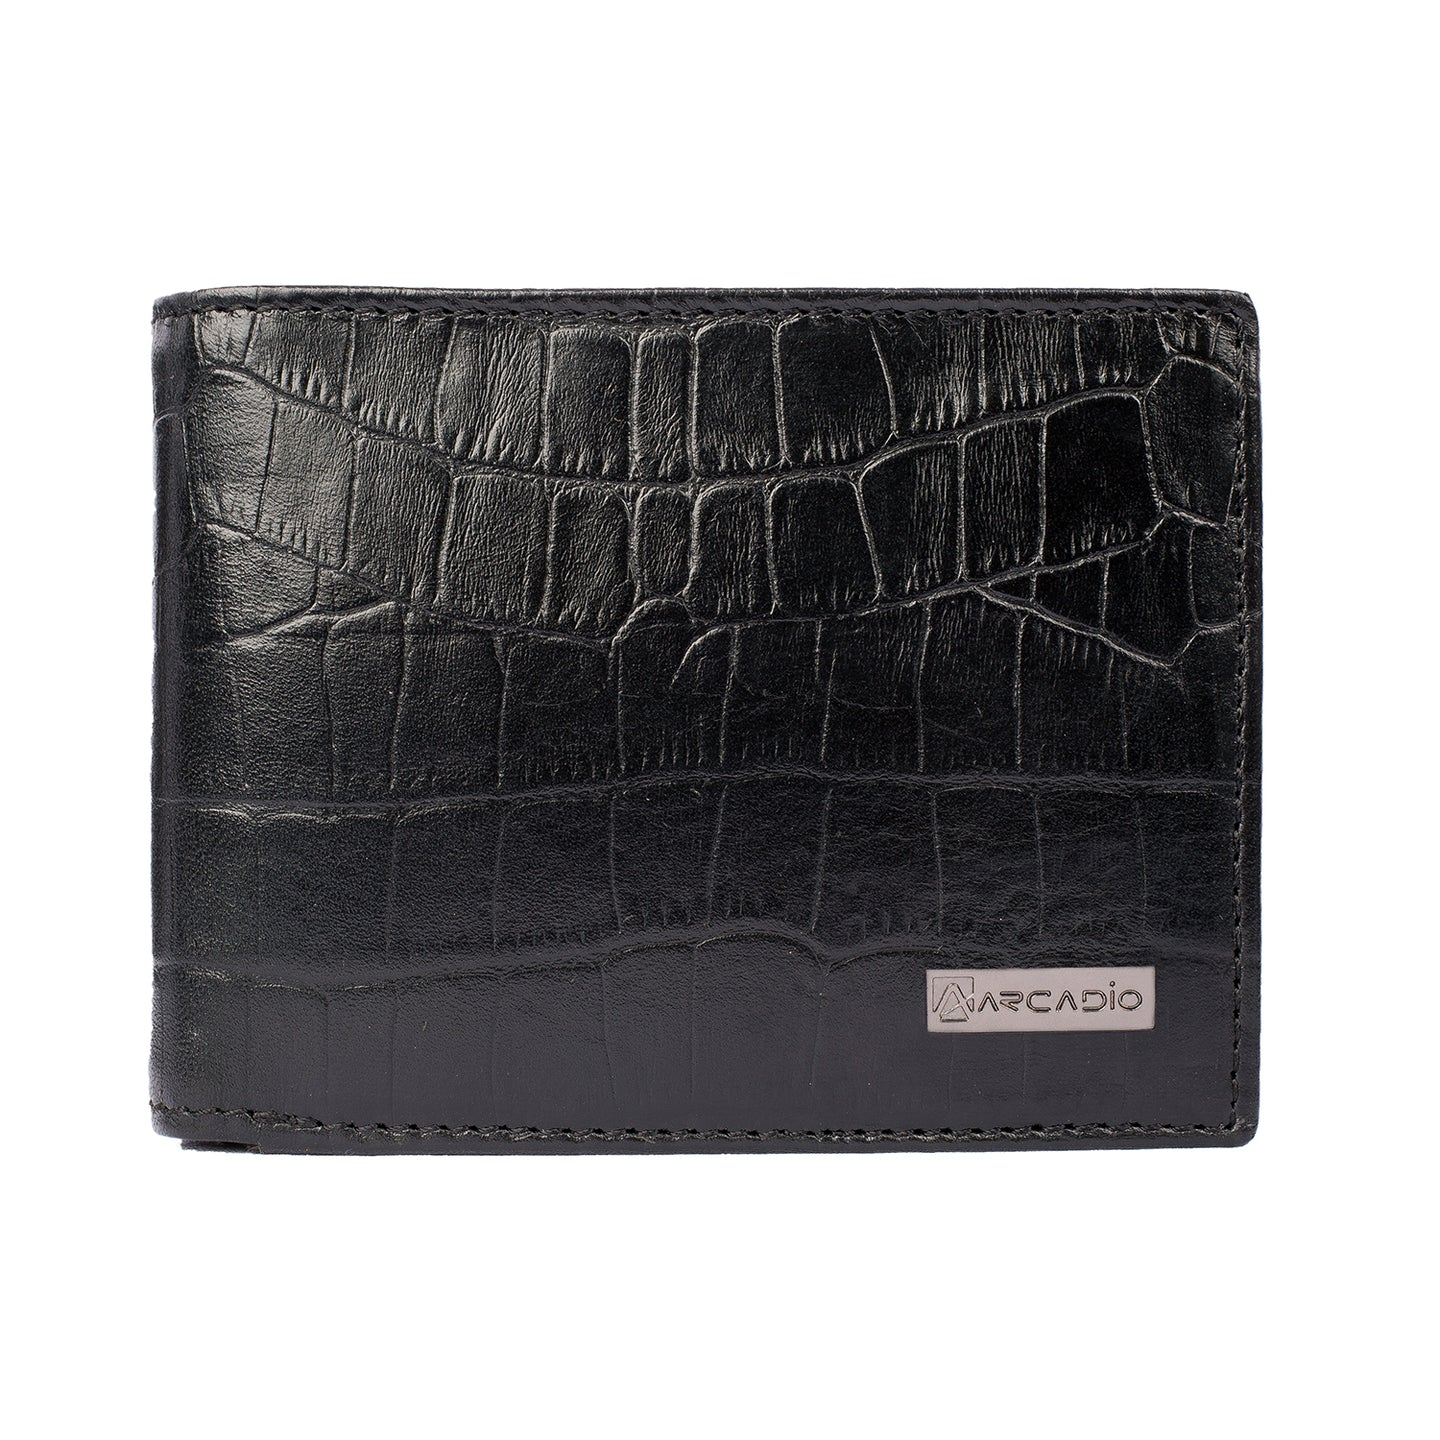 CROCK 'N' ROLL Bifold Croc Pattern Leather Wallet - ARW1003BK - ARCADIO LIFESTYLE